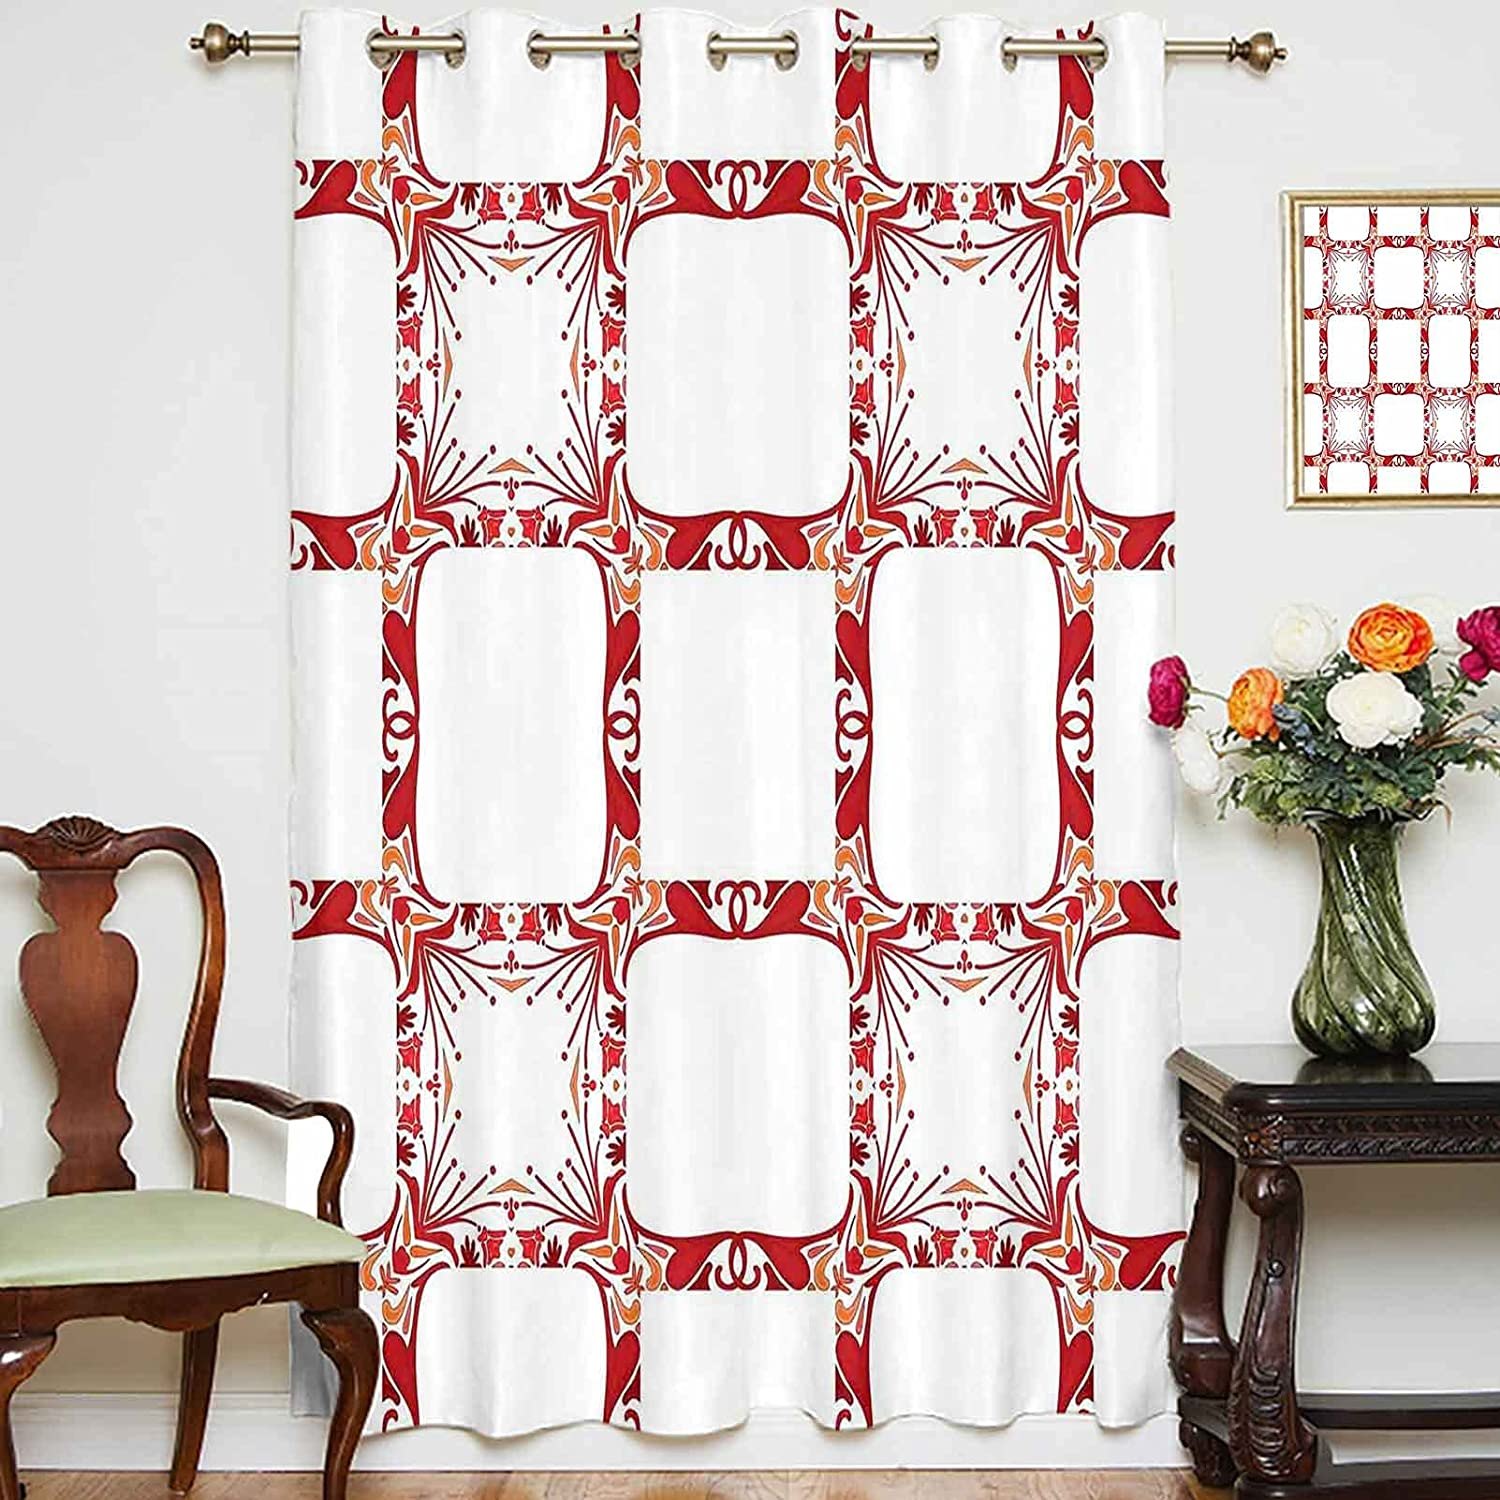 Blackout Shading Curtains Modern and Mix Los Angeles Mall Nostalgic Square Popular product Shaped